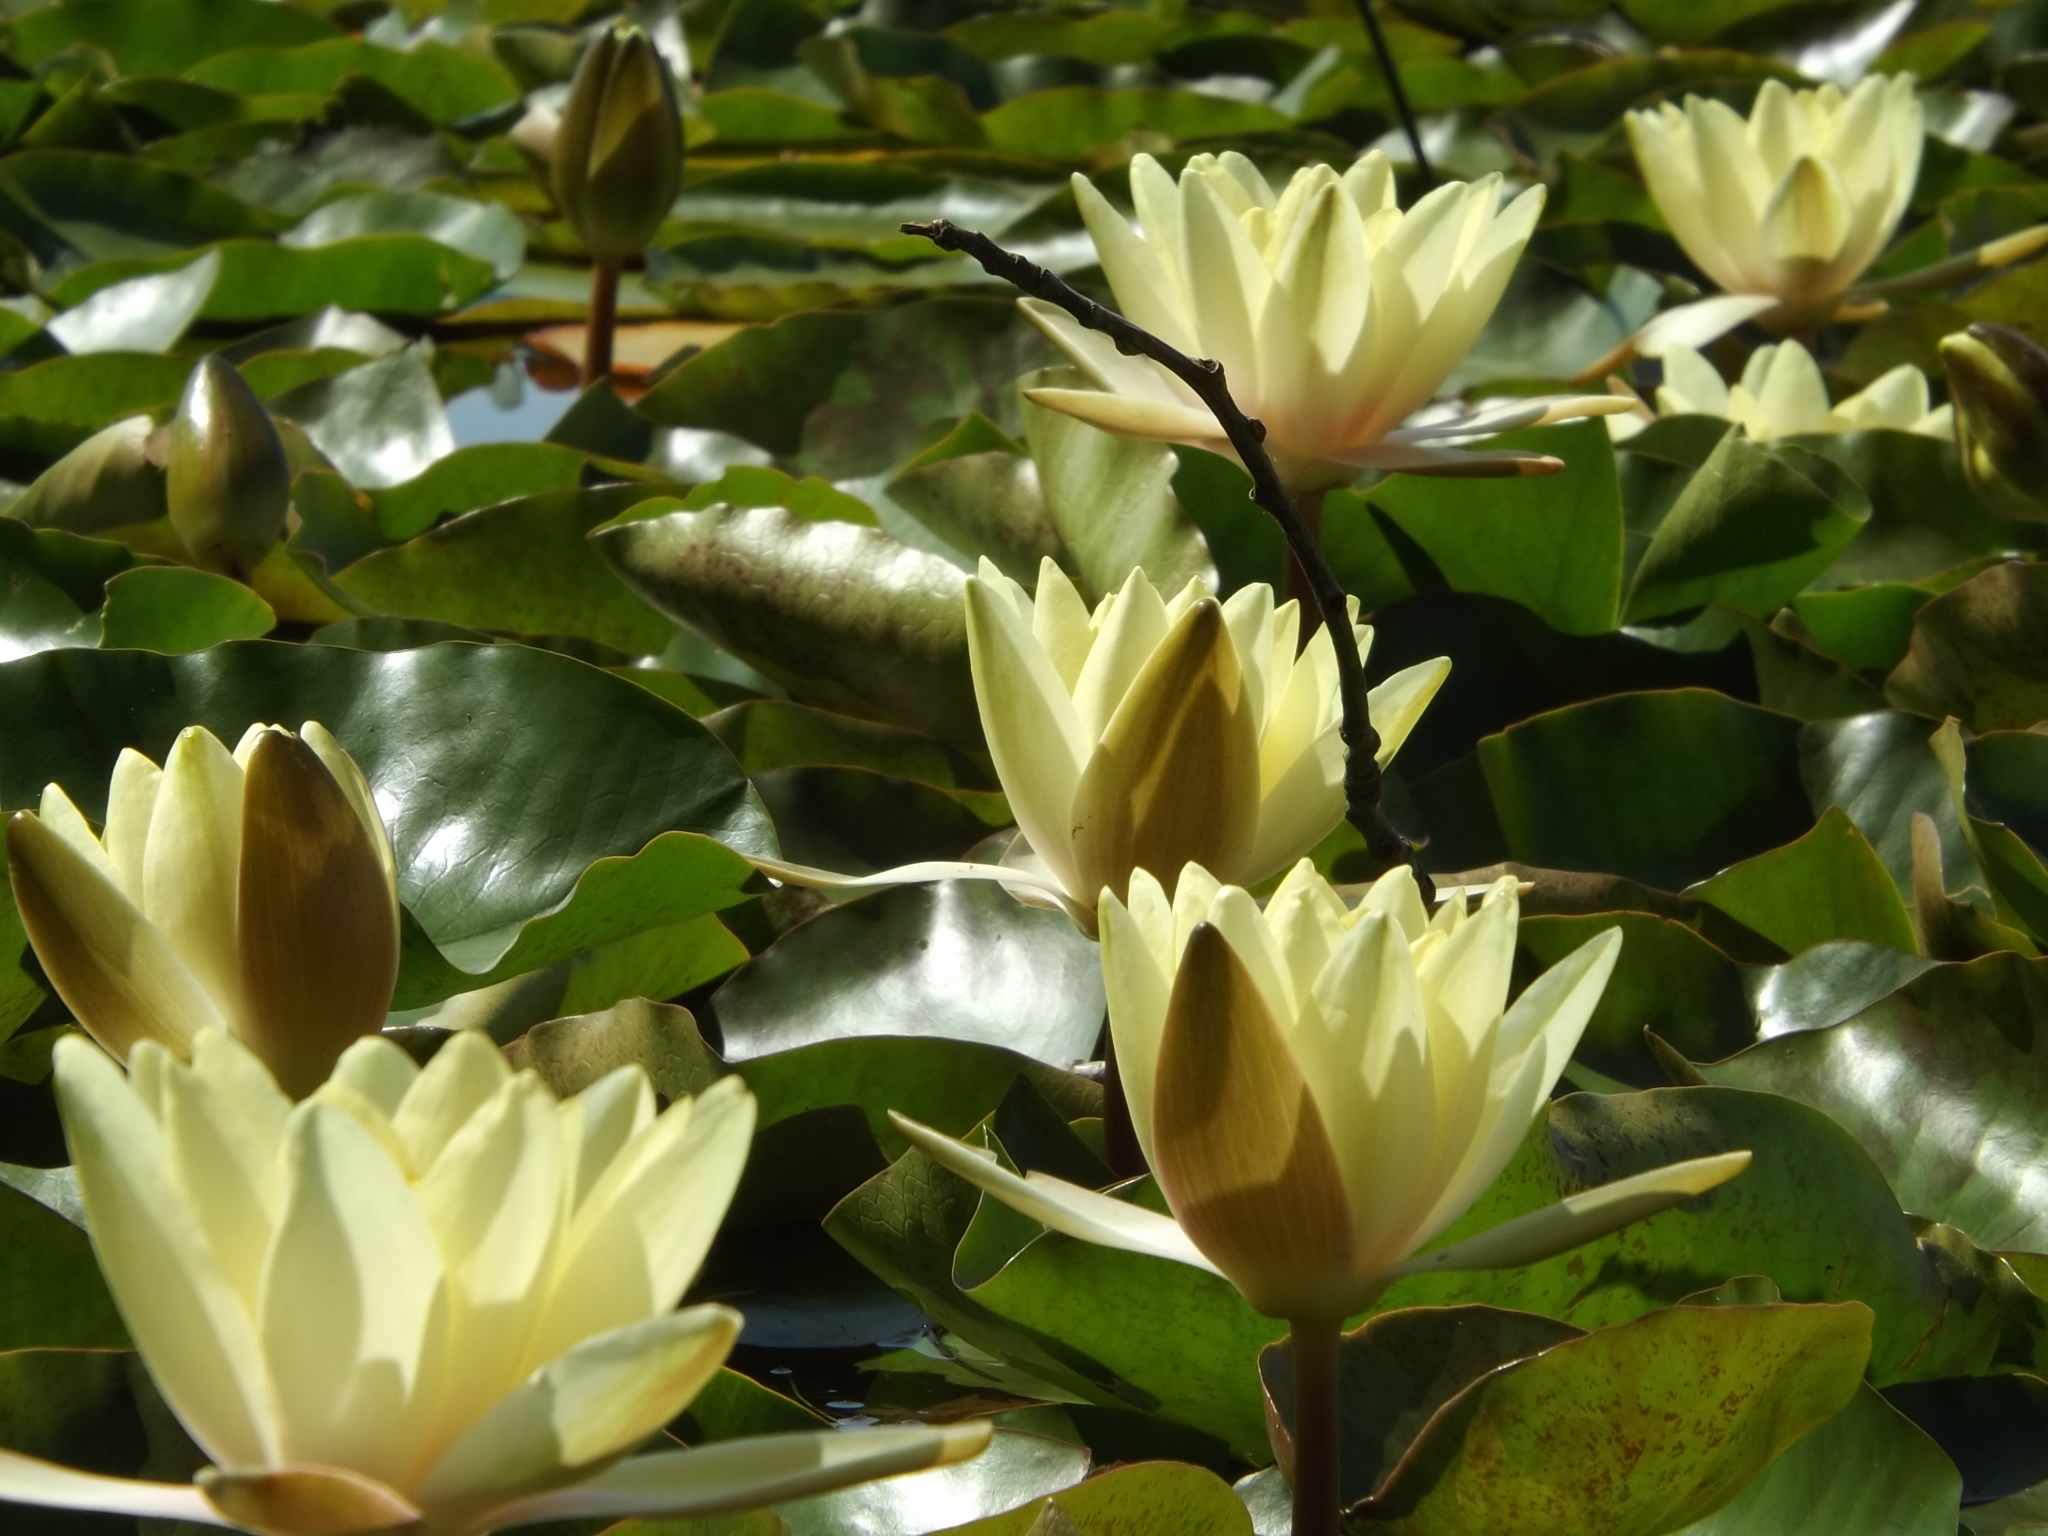 A flotilla of water lilies.